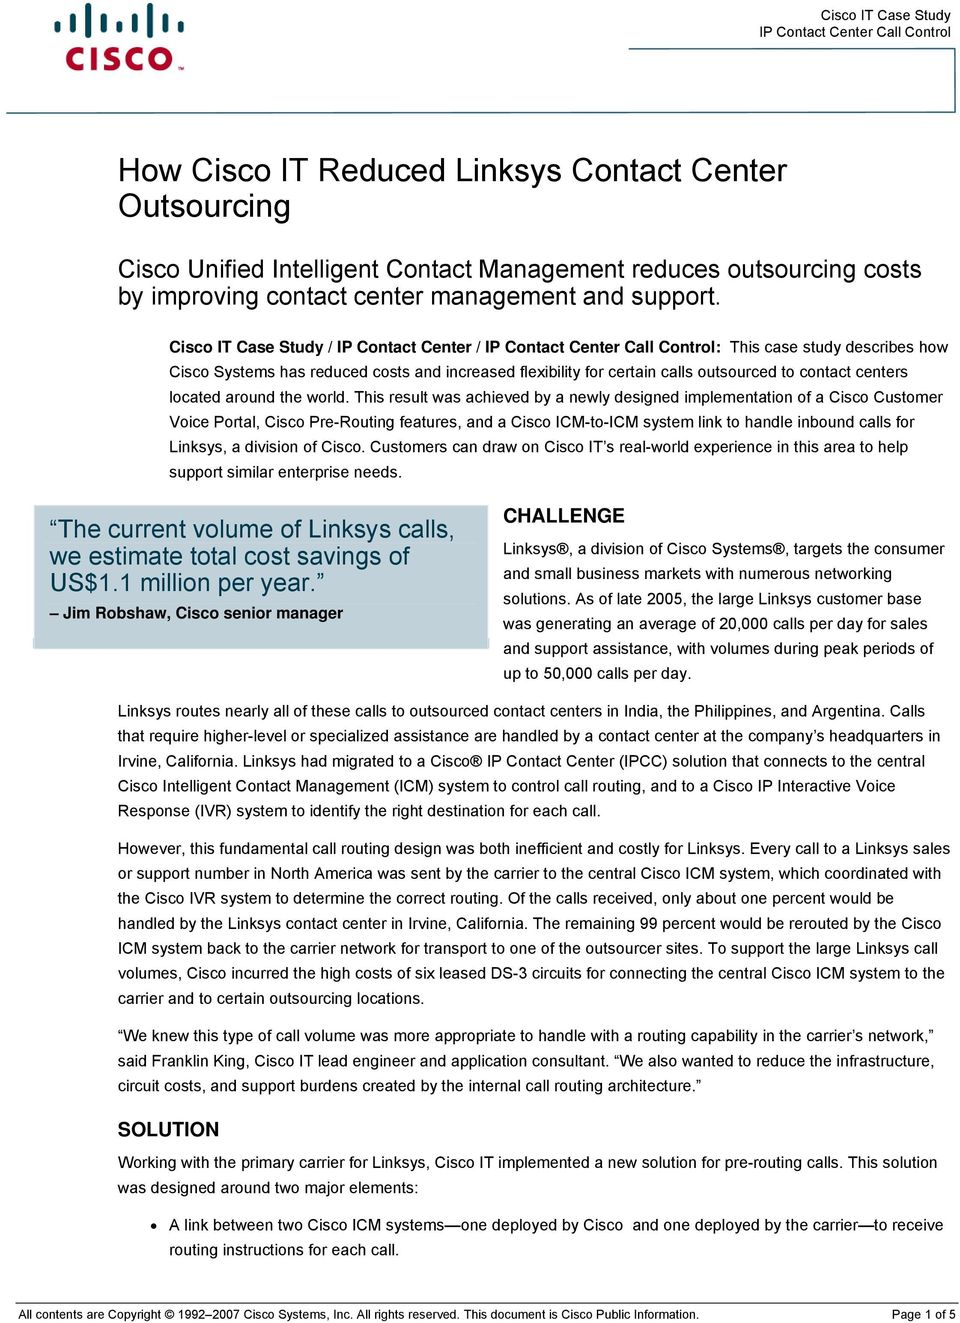 How Cisco IT Reduced Linksys Contact Center Outsourcing - PDF